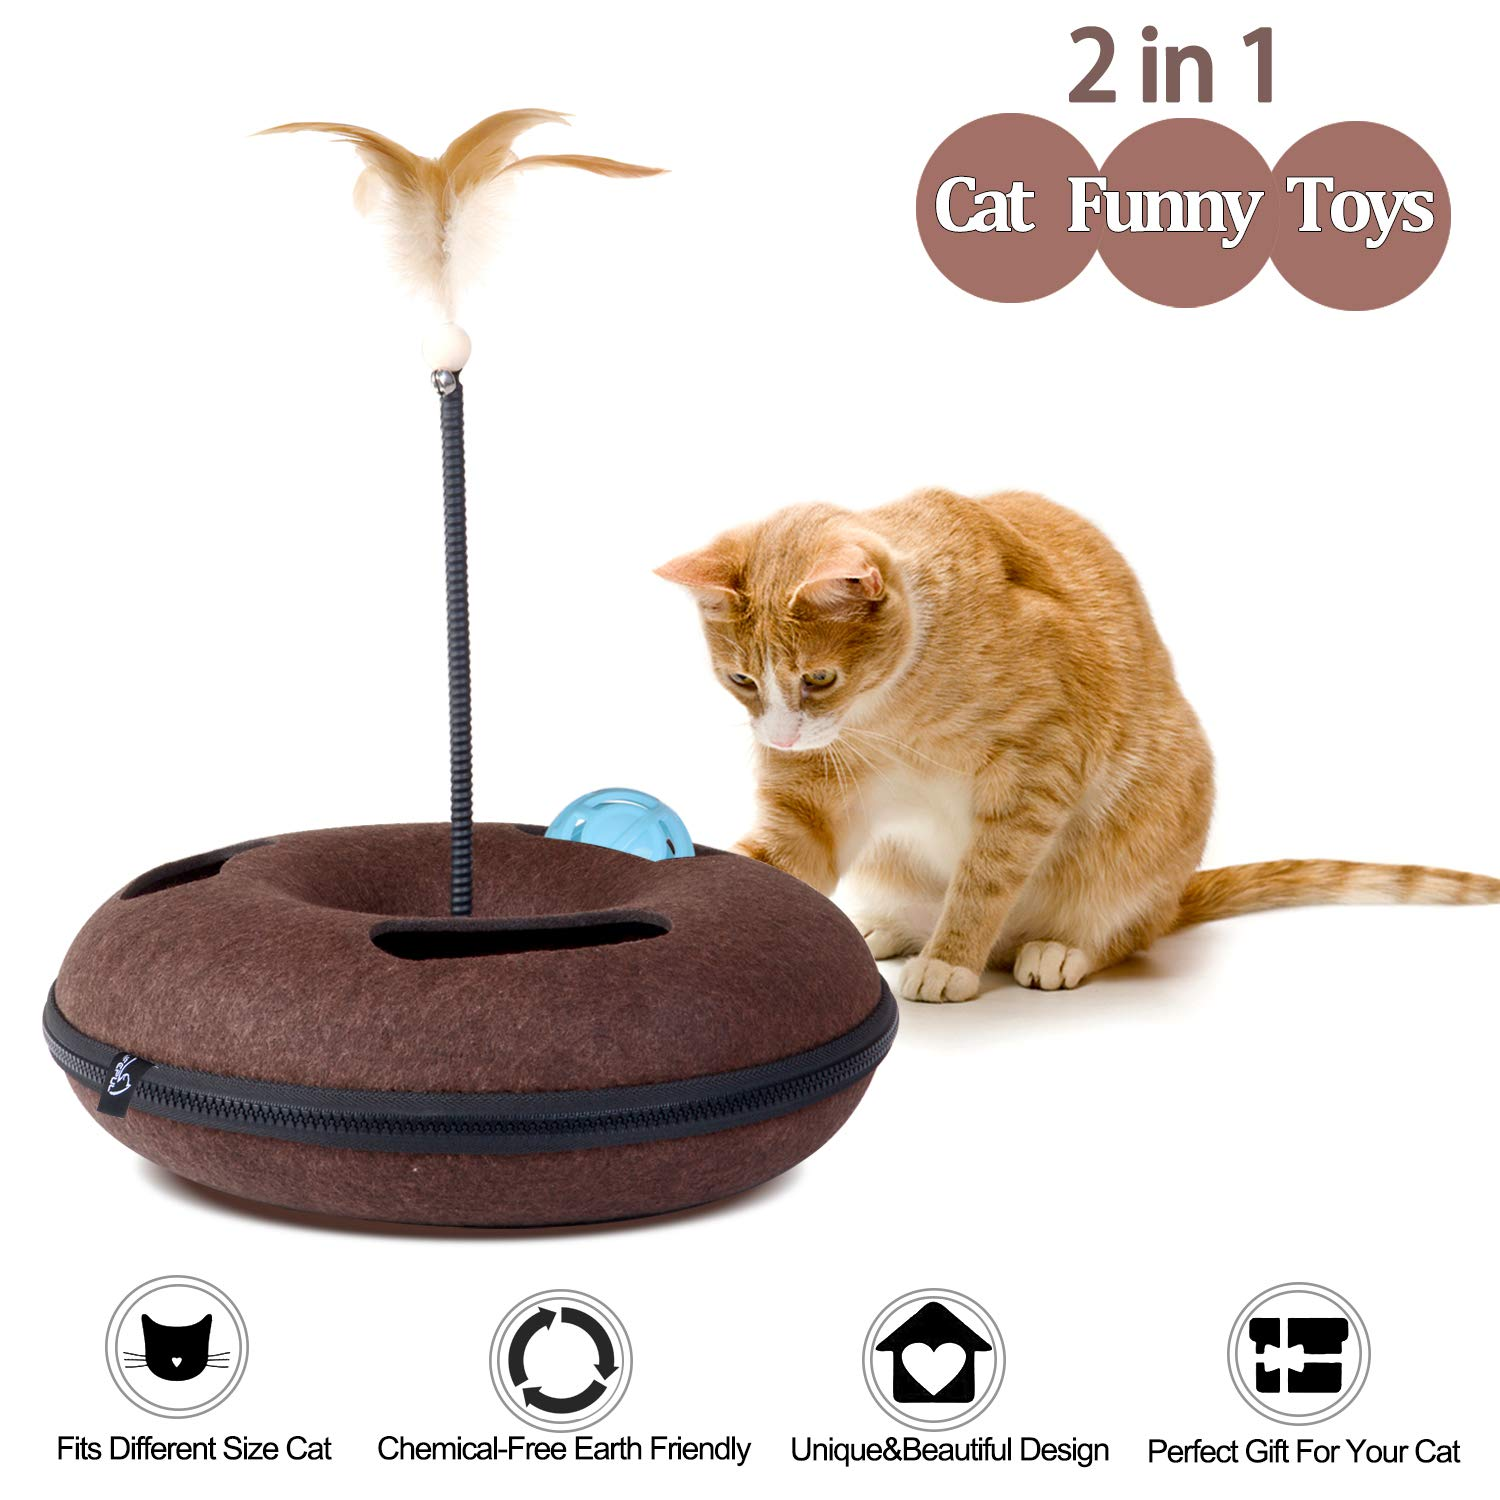 Lifepul Felt Interactive Cat Toys, 2 in 1 Kitten Feather Toys & Ball Rotating Track - Spring Feather Captive Funny Cat Teaser Hide and S, Treack Toy, Puzzle Box for Multiple Cats